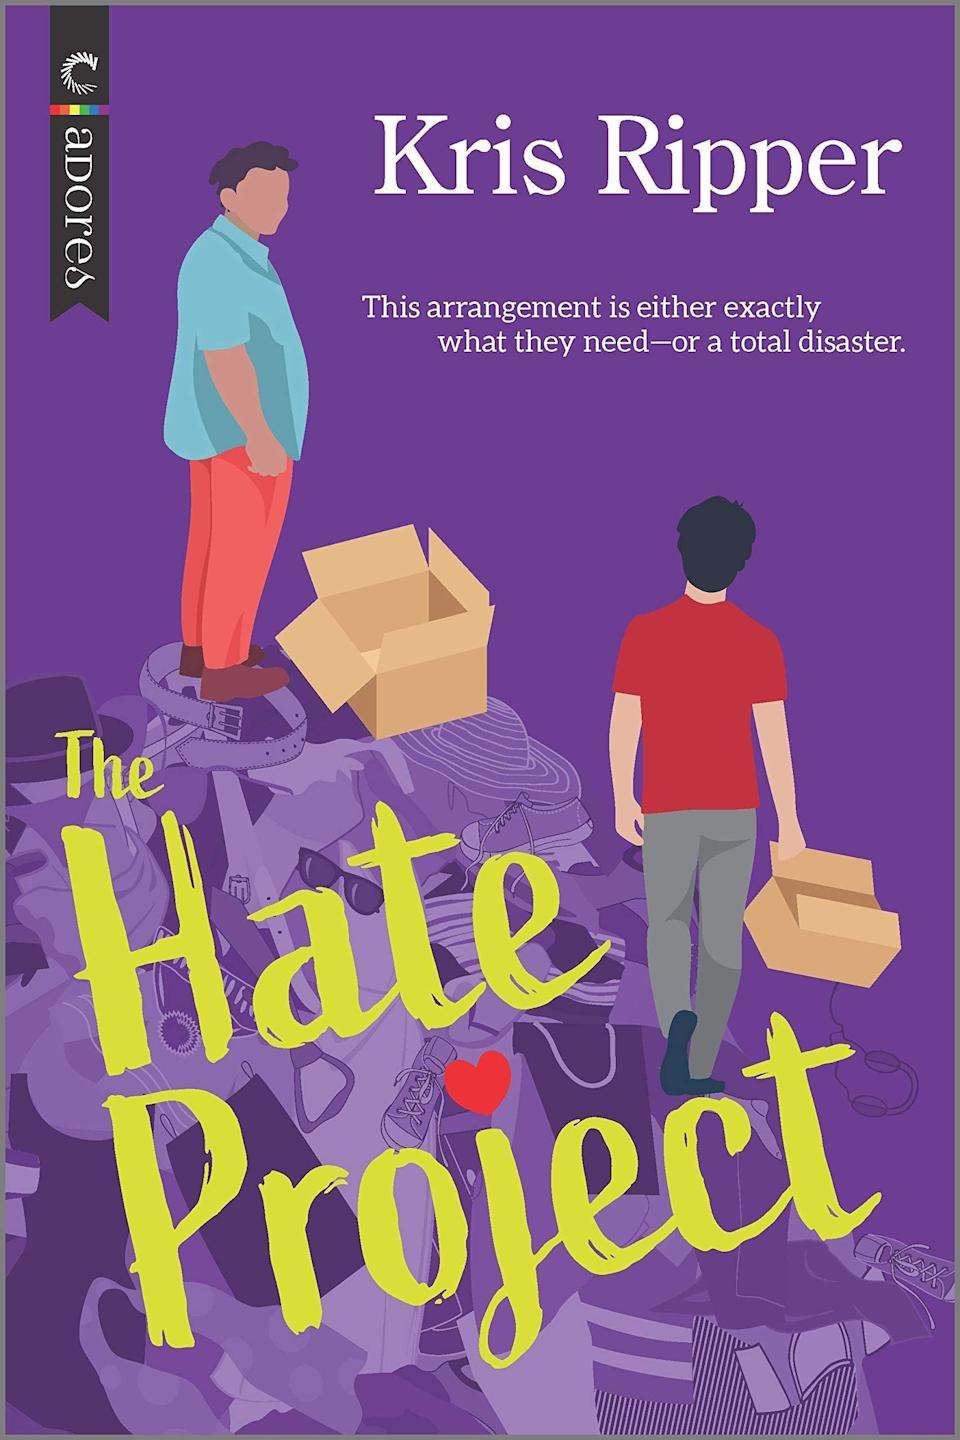 <p><span><strong>The Hate Project</strong></span> by Kris Ripper follows the grouchy Oscar and the pompous Jack, whose one-night stand is definitely not going to become something more. At least that's what they think until Oscar takes a job helping Jack clean out his grandmother's house, and they begin to realize they don't dislike each other nearly as much as they initially thought they did. </p> <p><em>Out April 27</em></p>